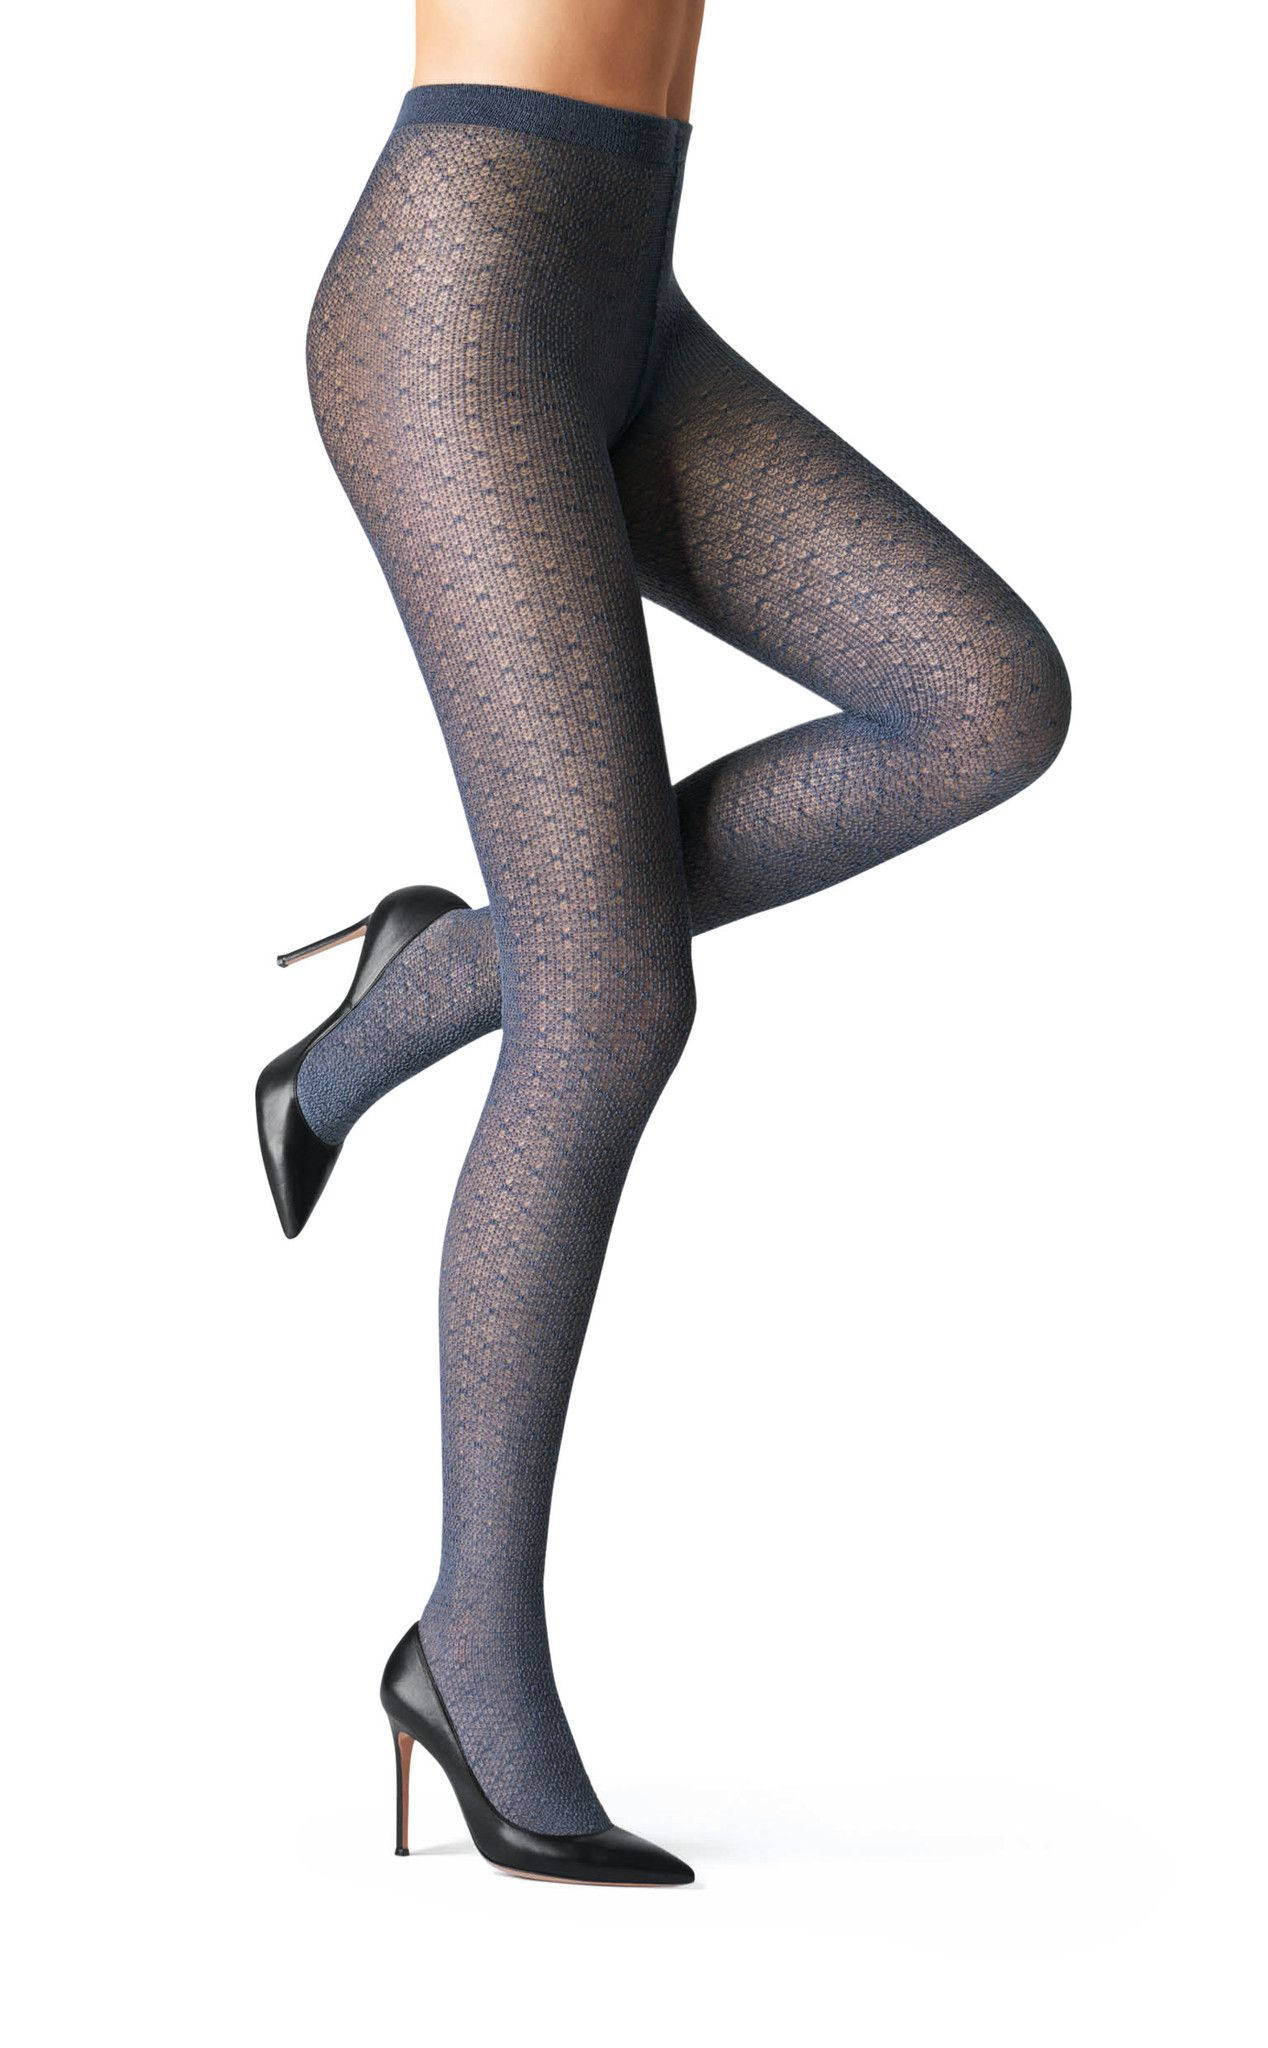 79bd0a6b4 FOGAL 5071 Gerit Tights (FW 2016.17)